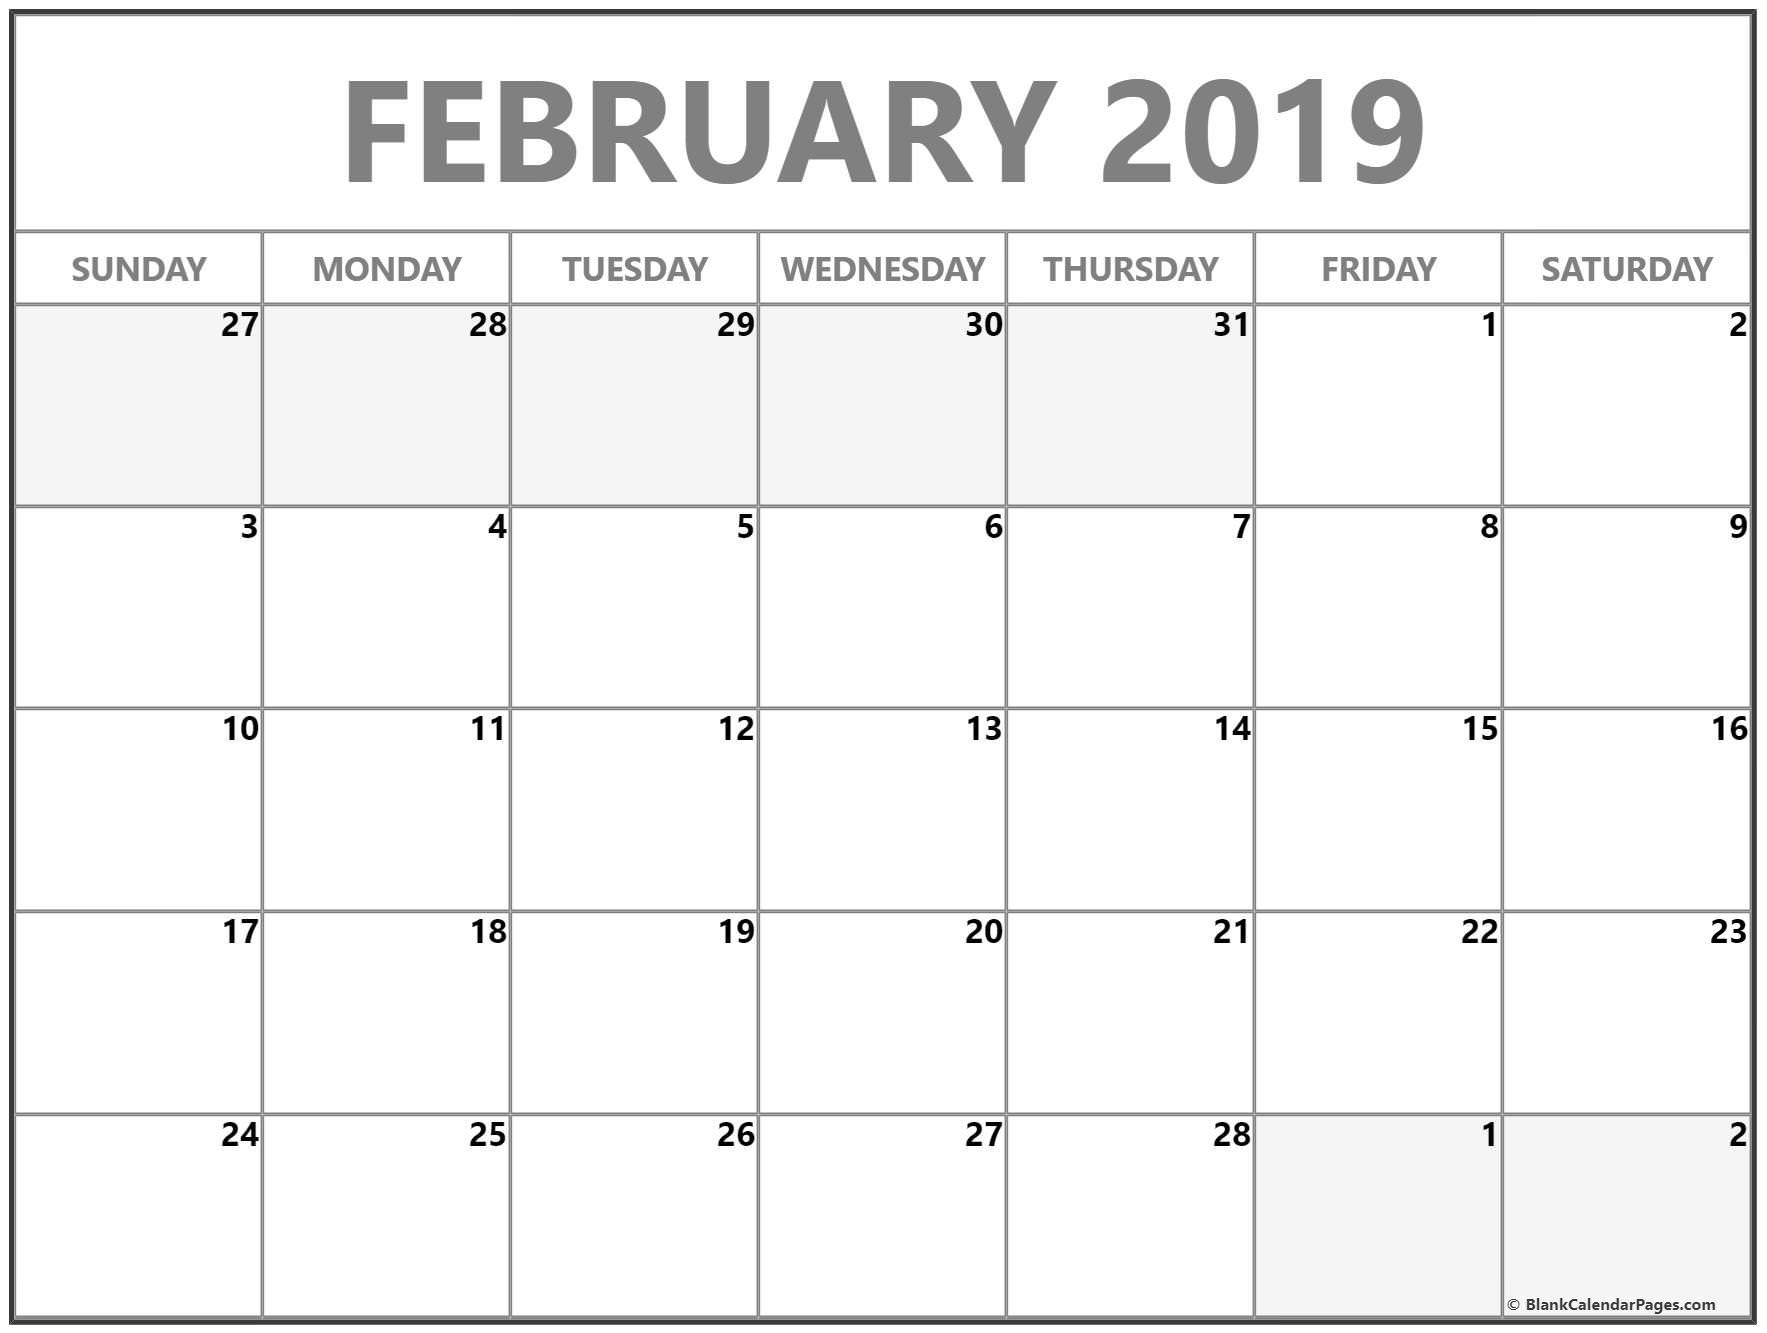 8 free february 2019 a4 calendar download calendar 2018 free::February 2019 Calendar A4